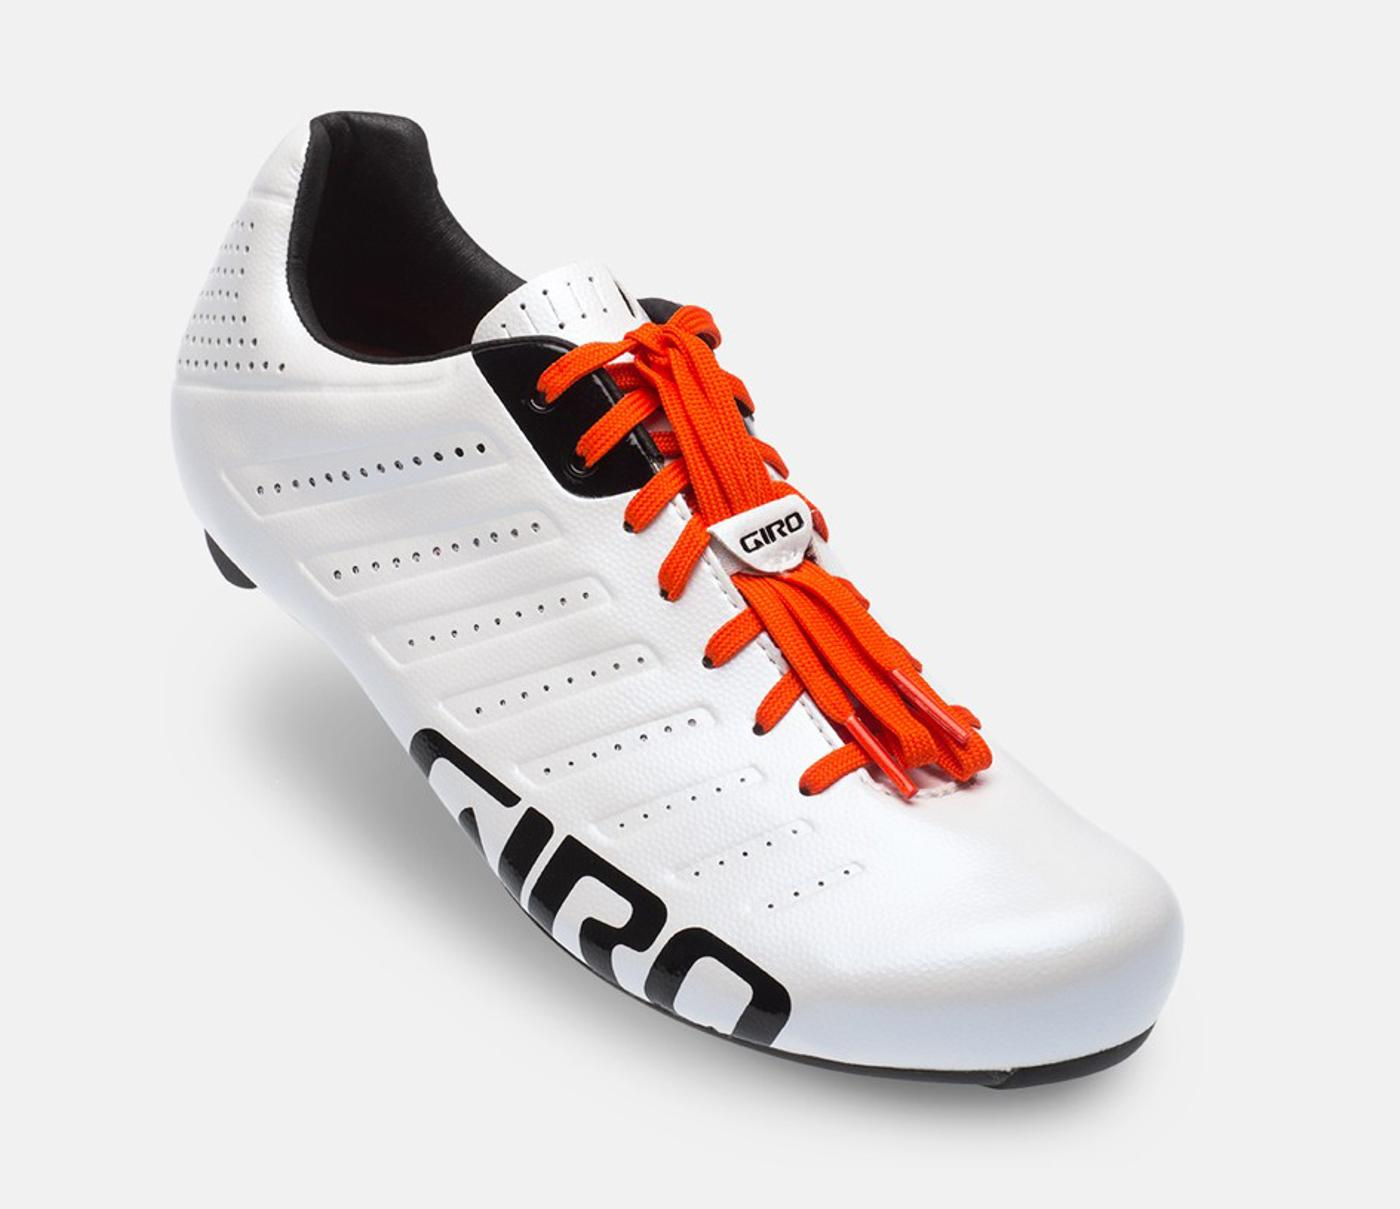 Are Your Giro Laces Cooked?